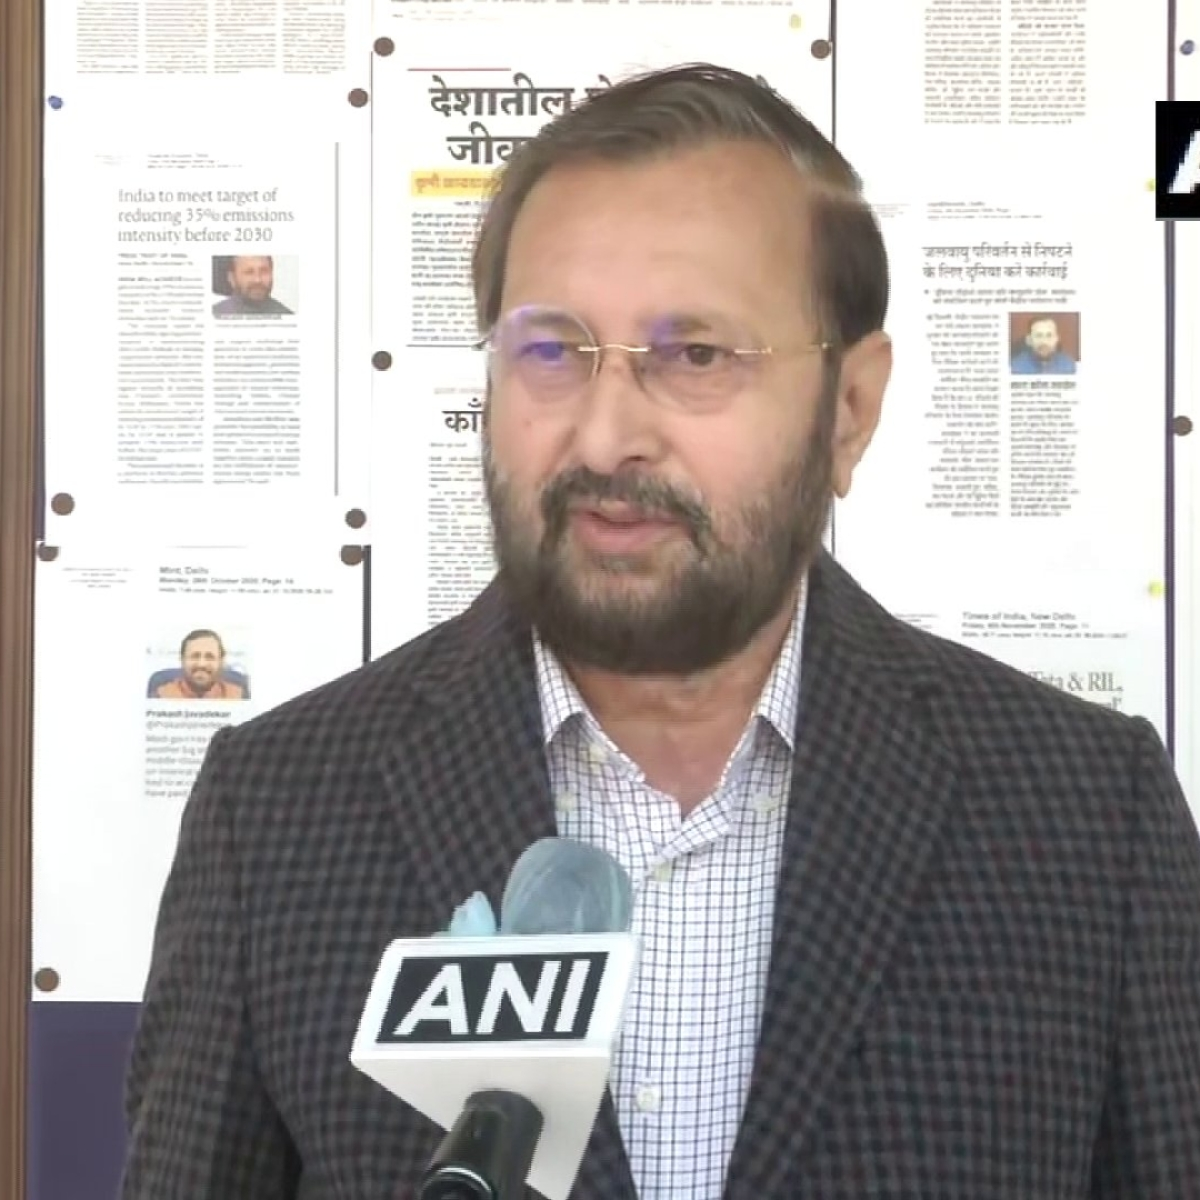 After passing Contract Farming Act under its regime, Cong's opposition to farm laws hypocritical: Prakash Javadekar